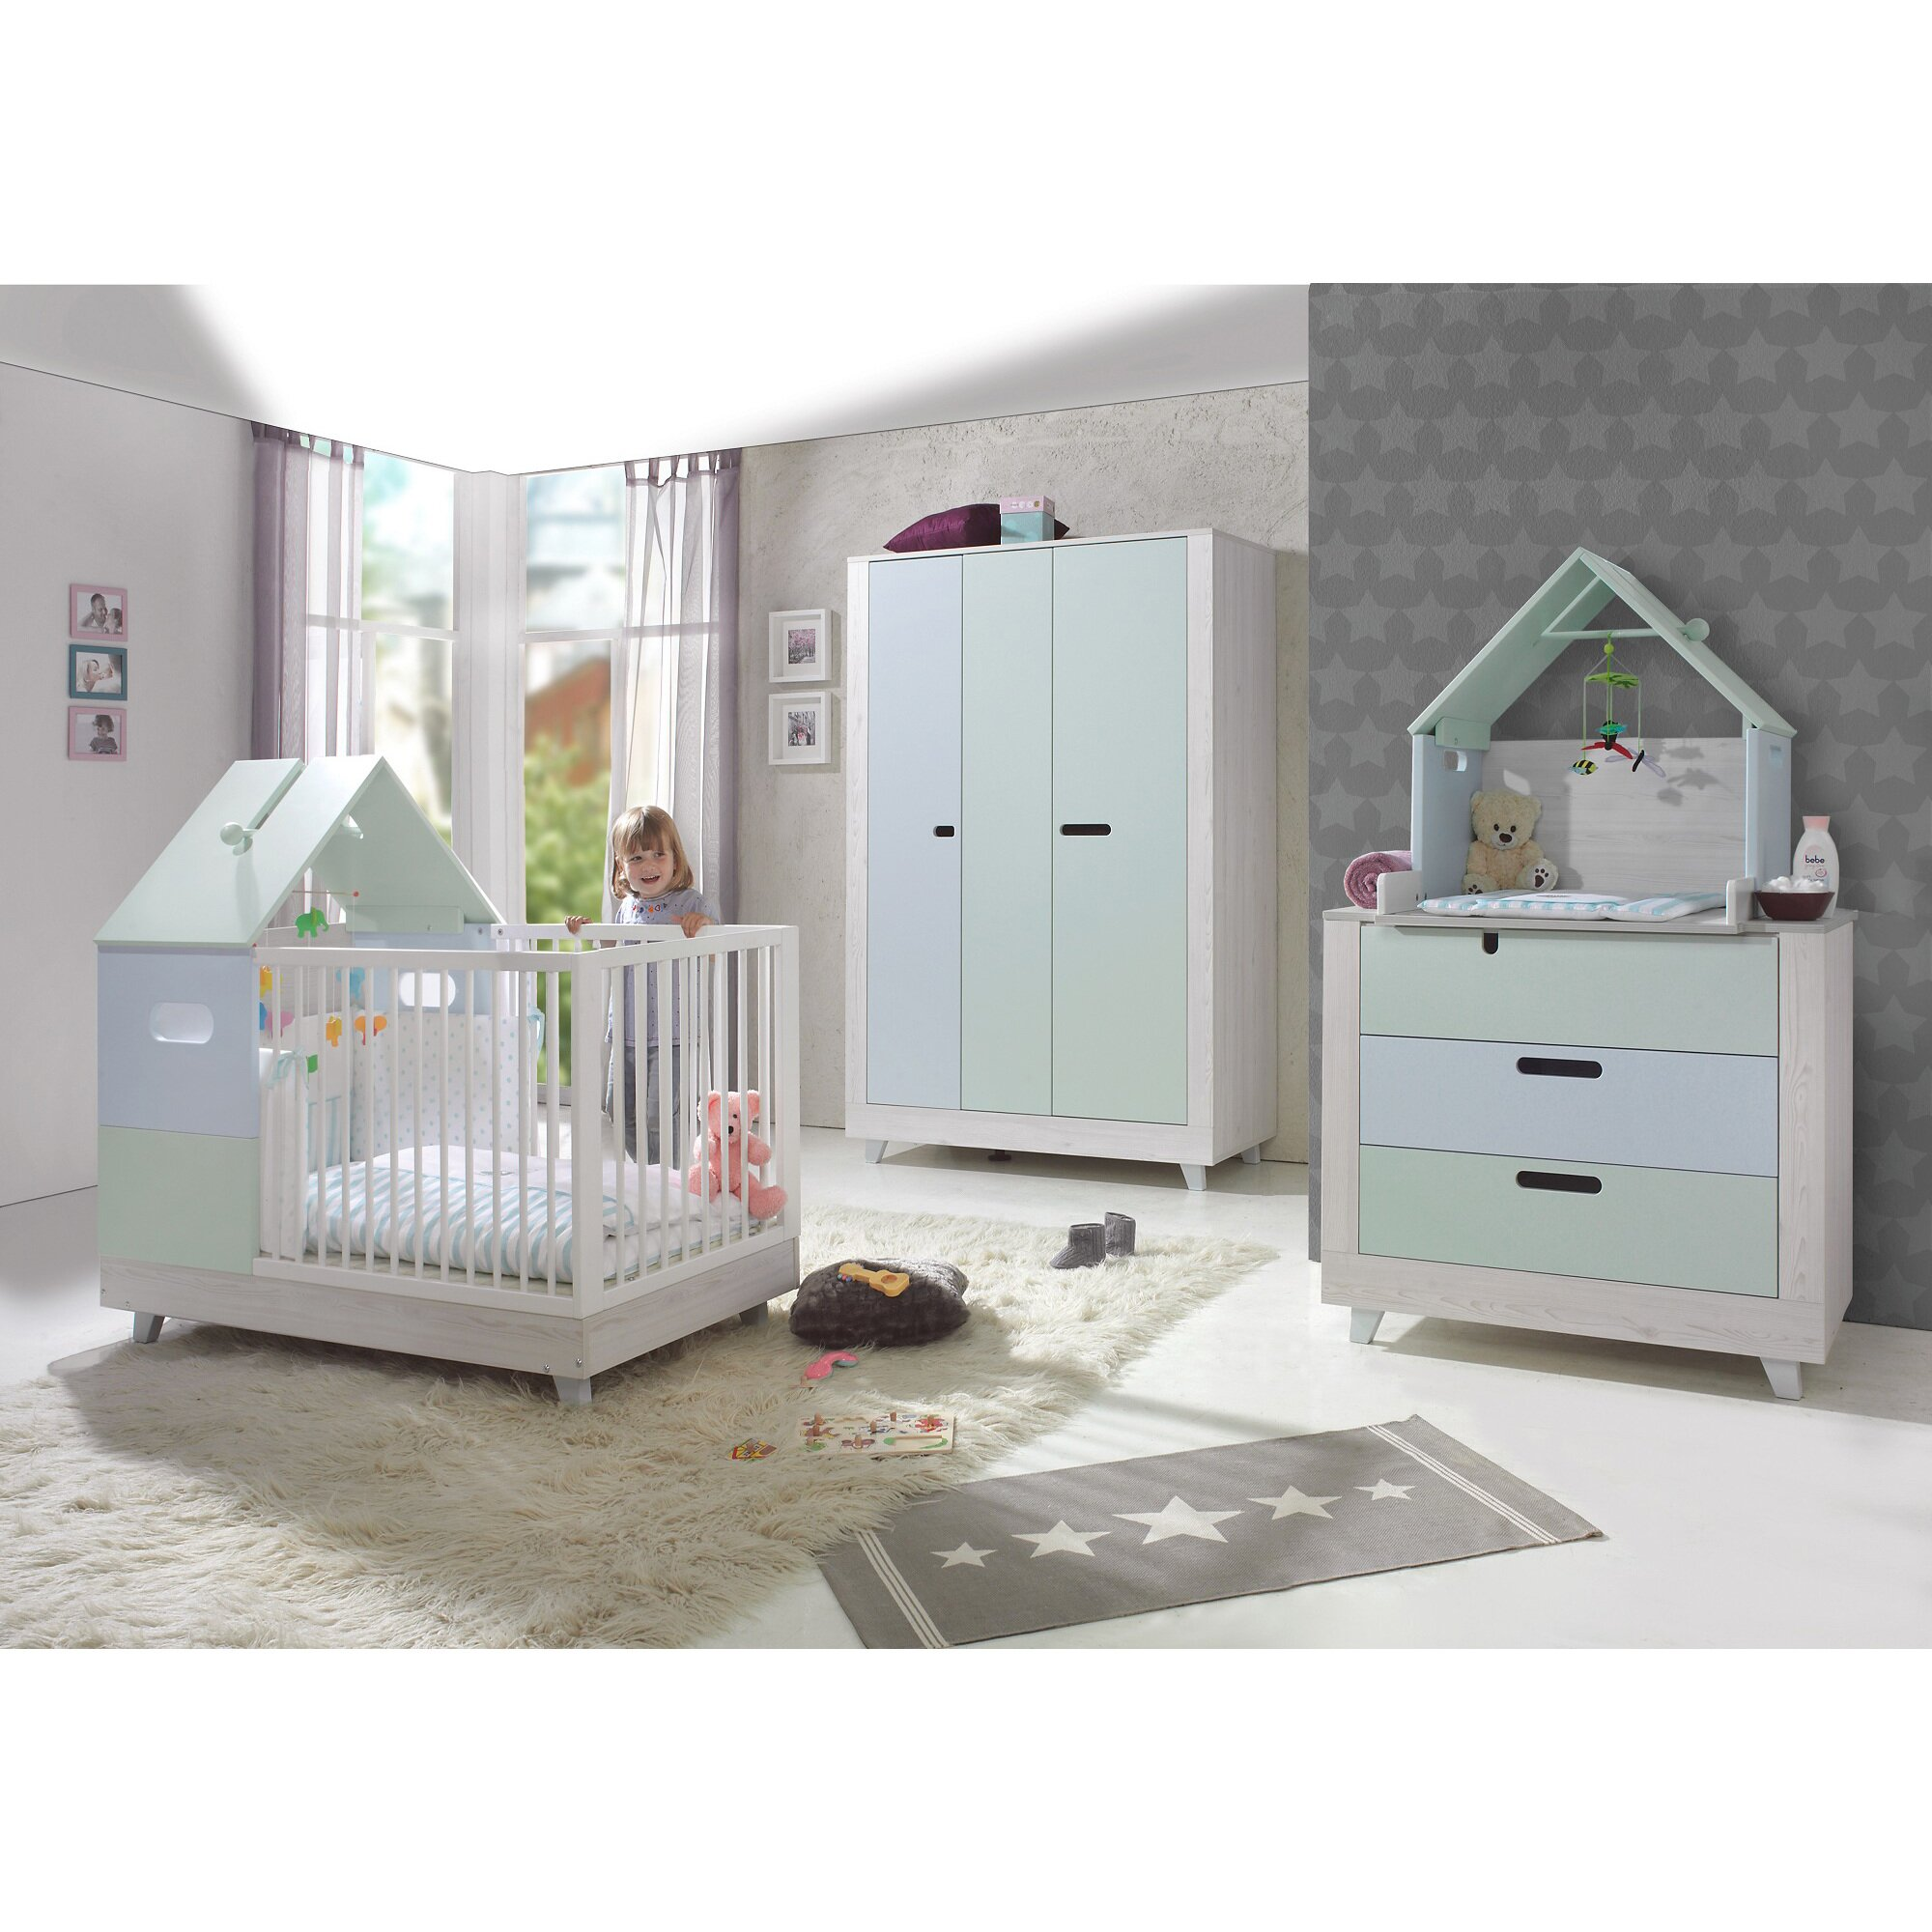 geuther-3-tlg-babyzimmer-momo